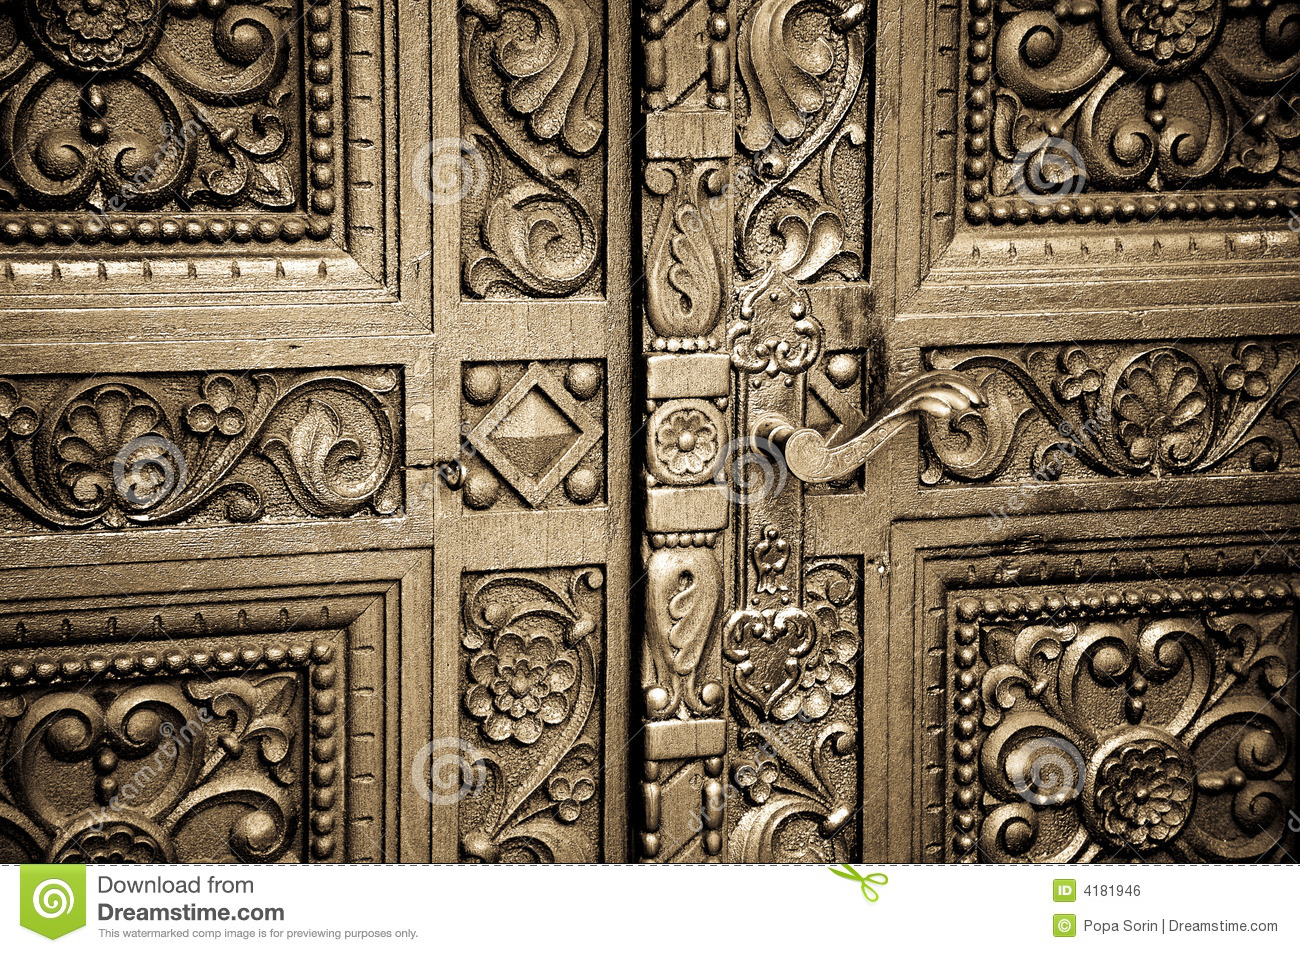 Carved wooden doors stock photo image of alexander for Wood carving doors hd images